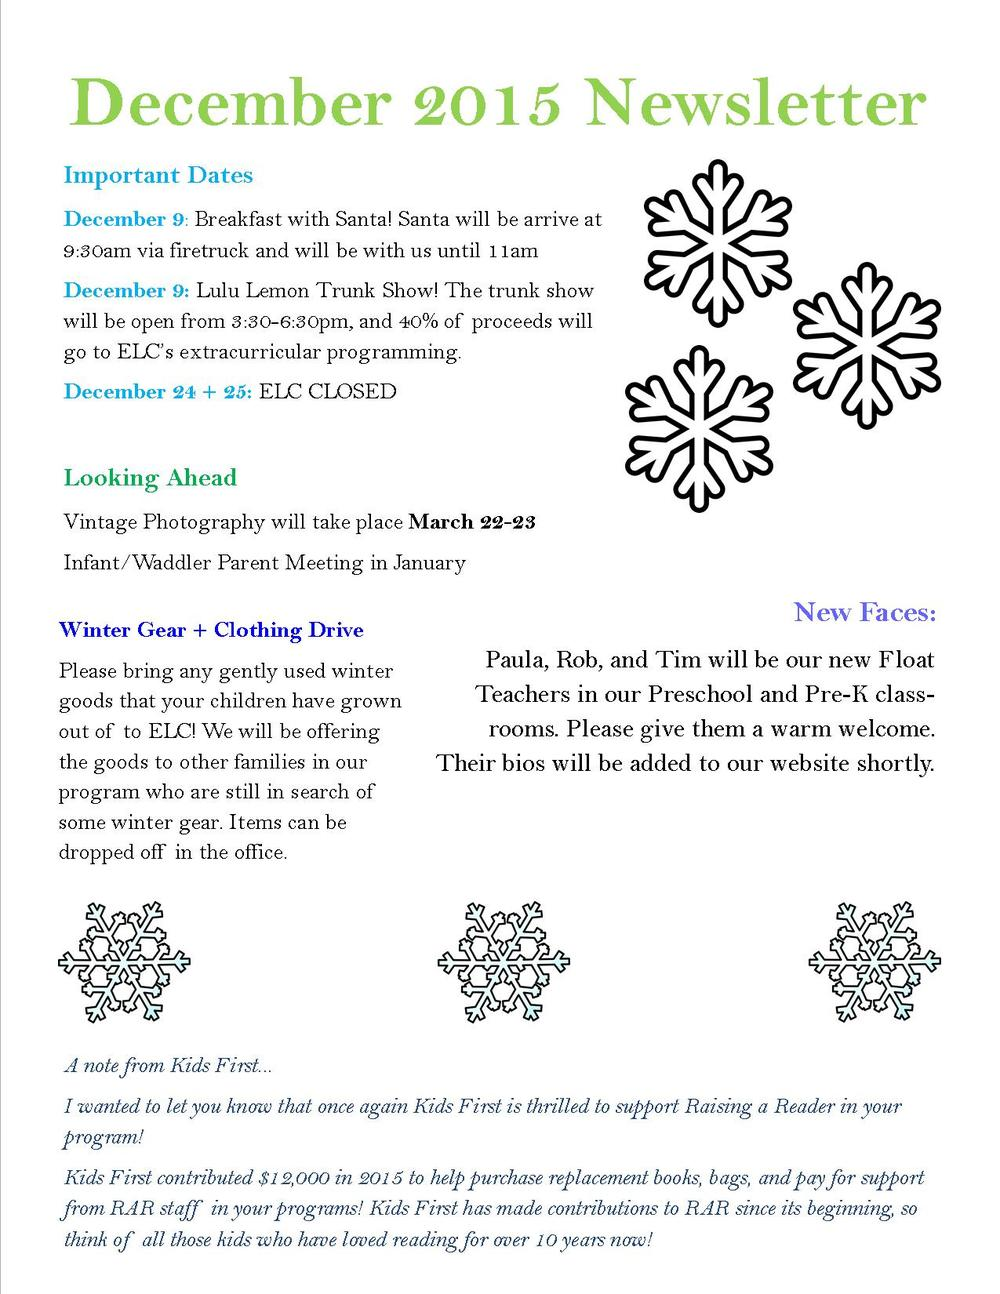 December 2015 Newsletter Preschool PreK.jpg